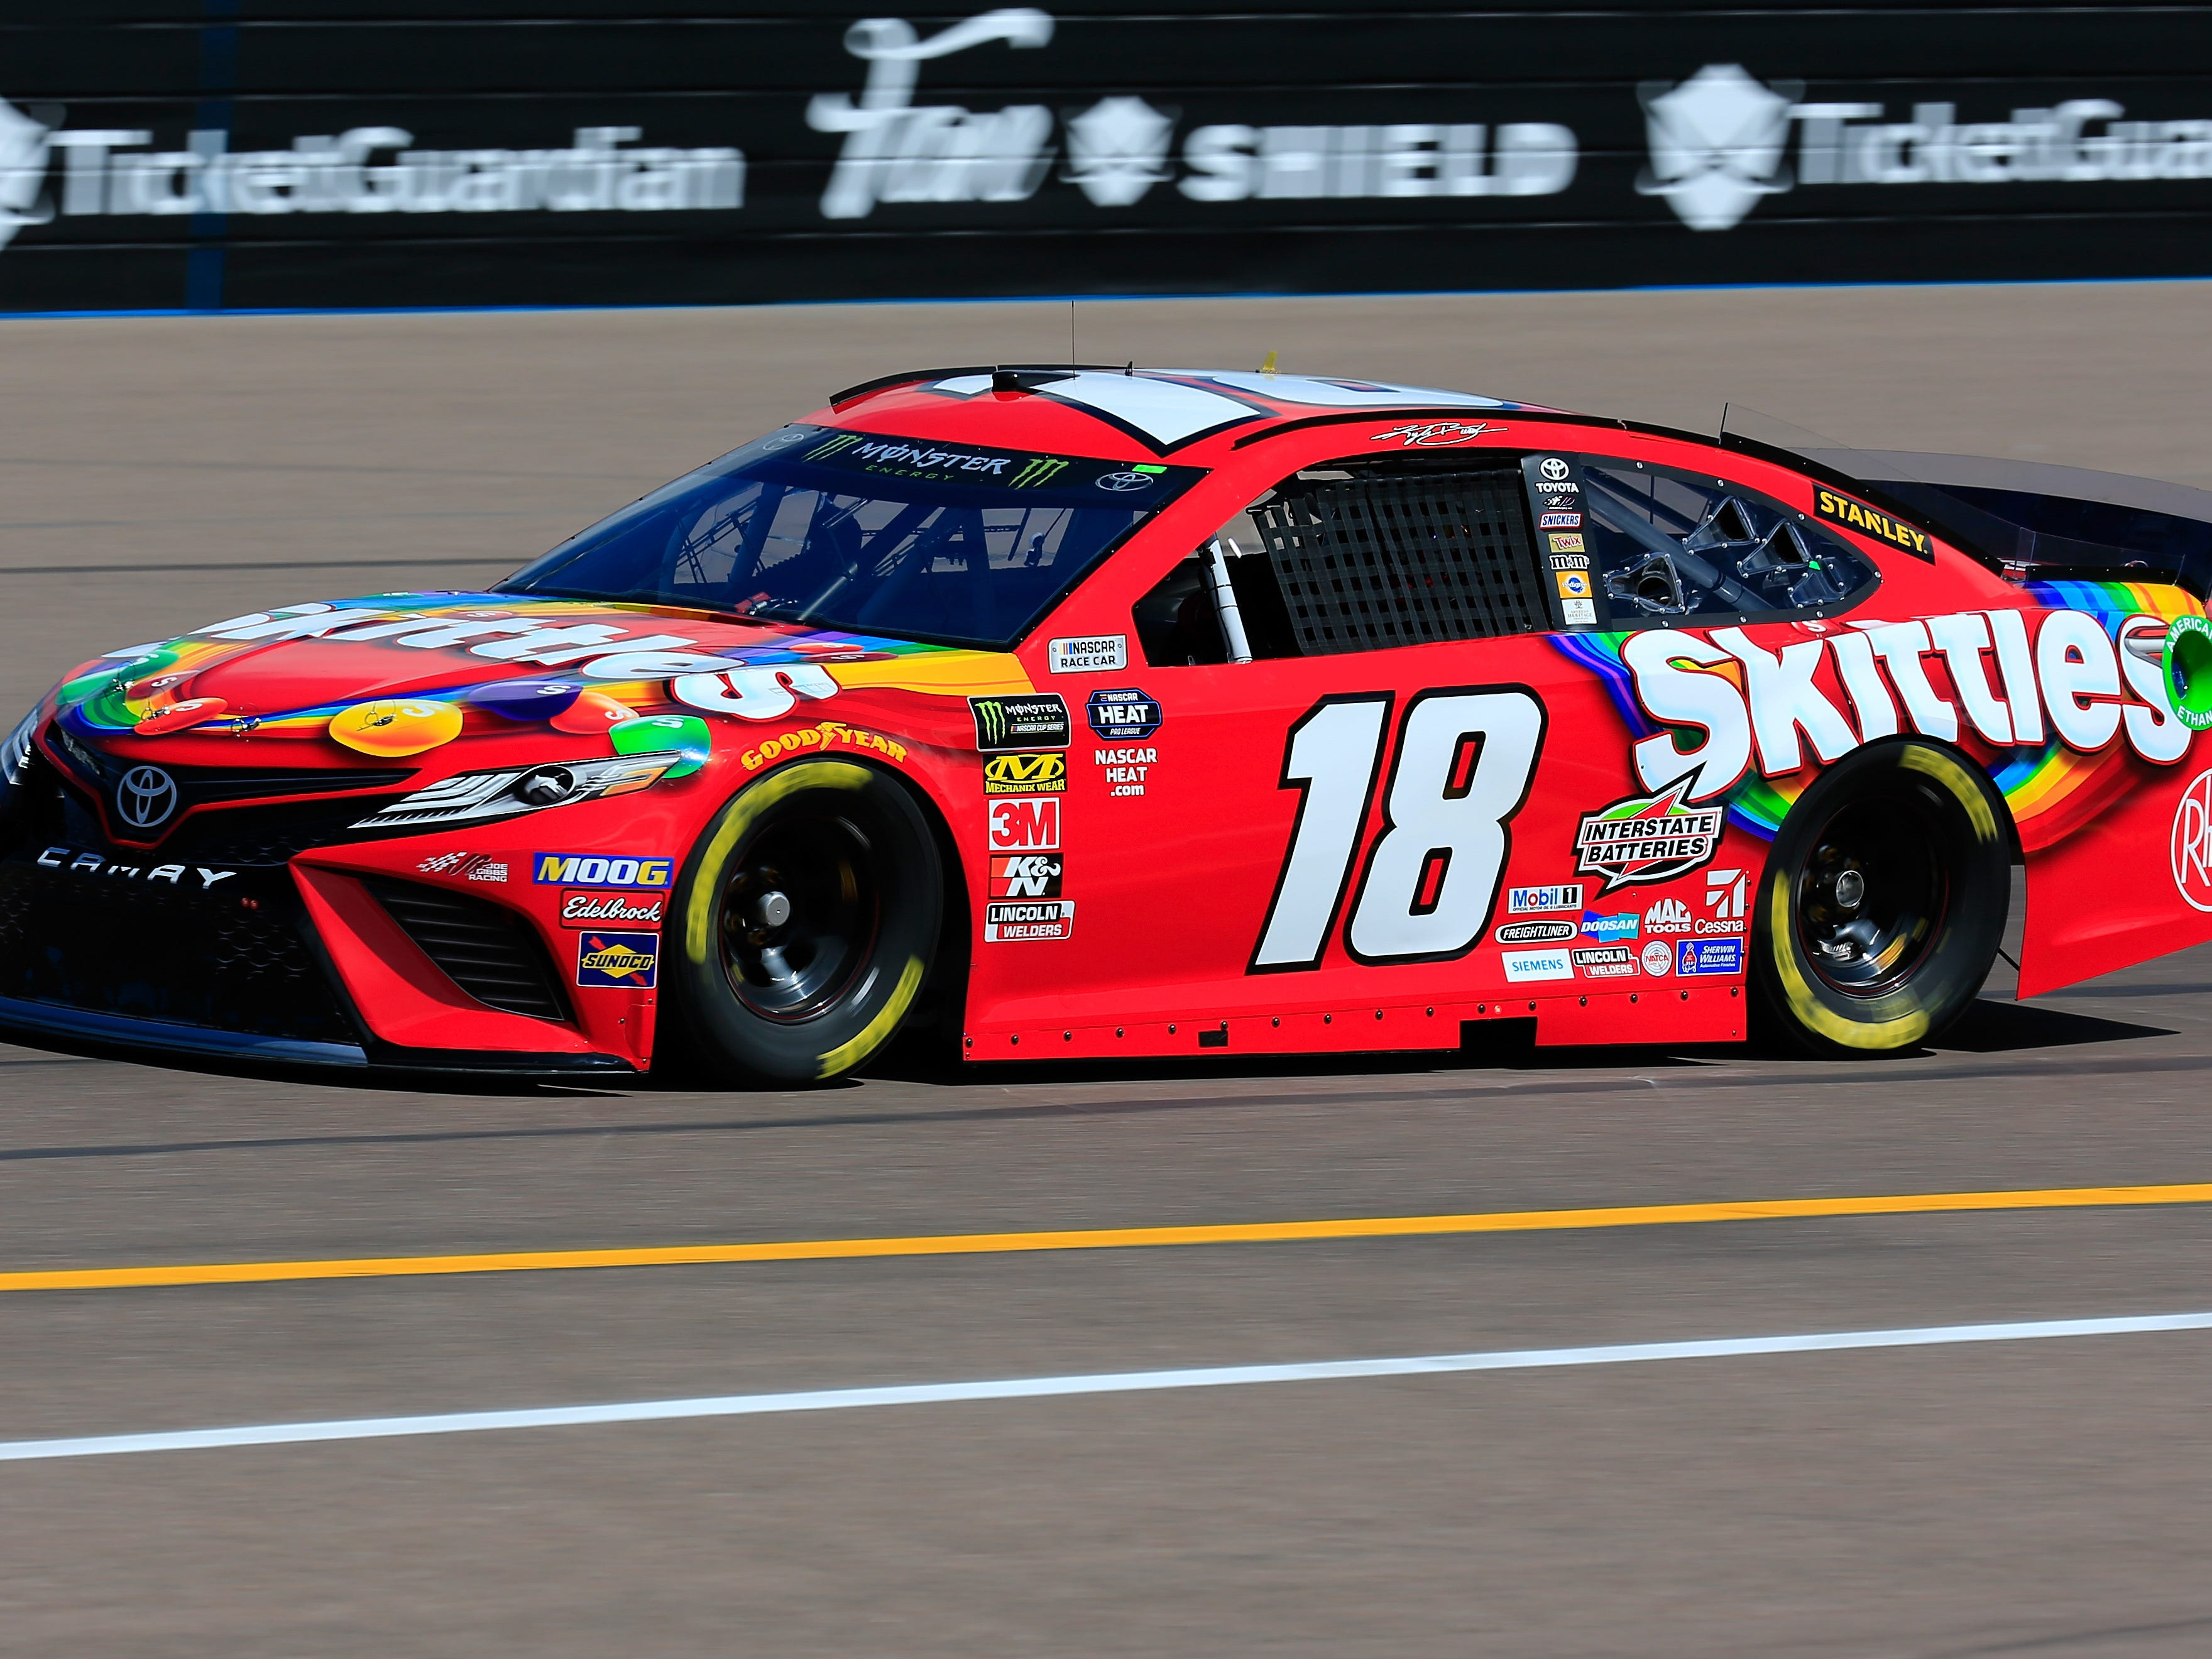 AVONDALE, AZ - MARCH 08: Kyle Busch, driver of the #18 Skittles Toyota, practices for the Monster Energy NASCAR Cup Series TicketGuardian 500 at ISM Raceway on March 8, 2019 in Avondale, Arizona.